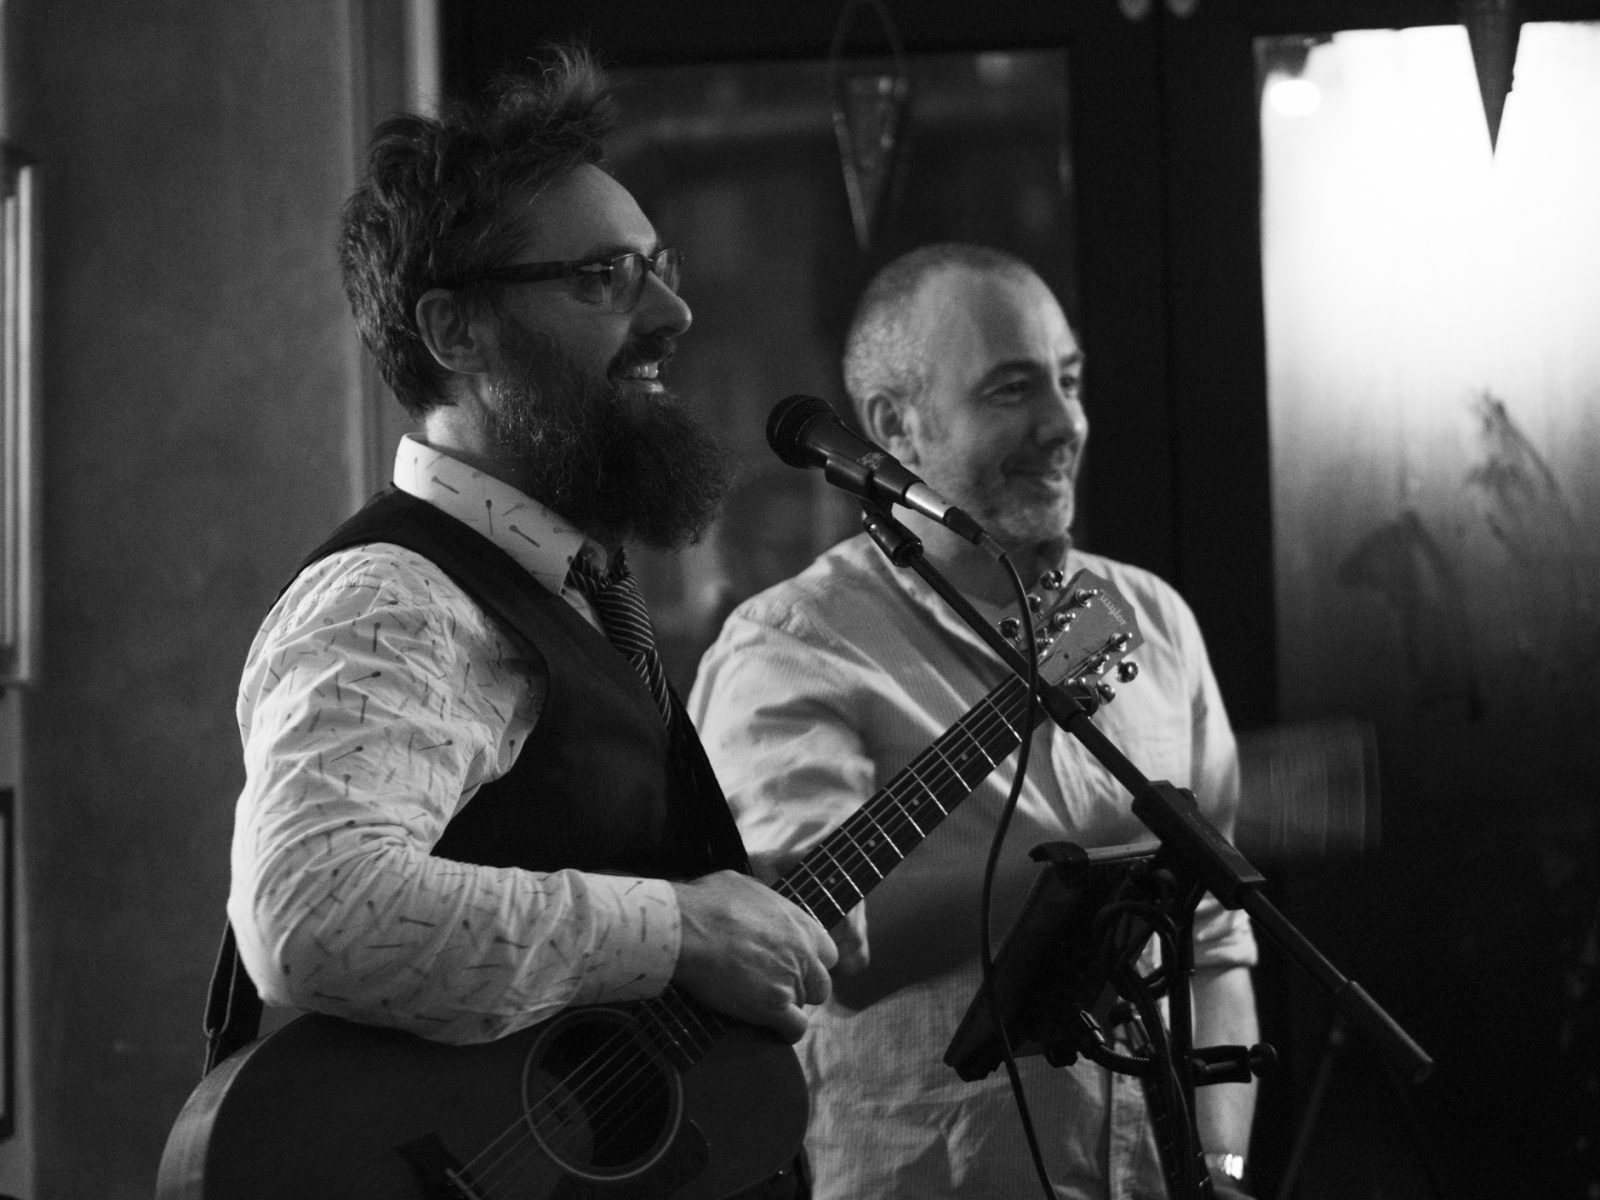 Music video production: Peter and Michael from Hund i Snor greeting the audience